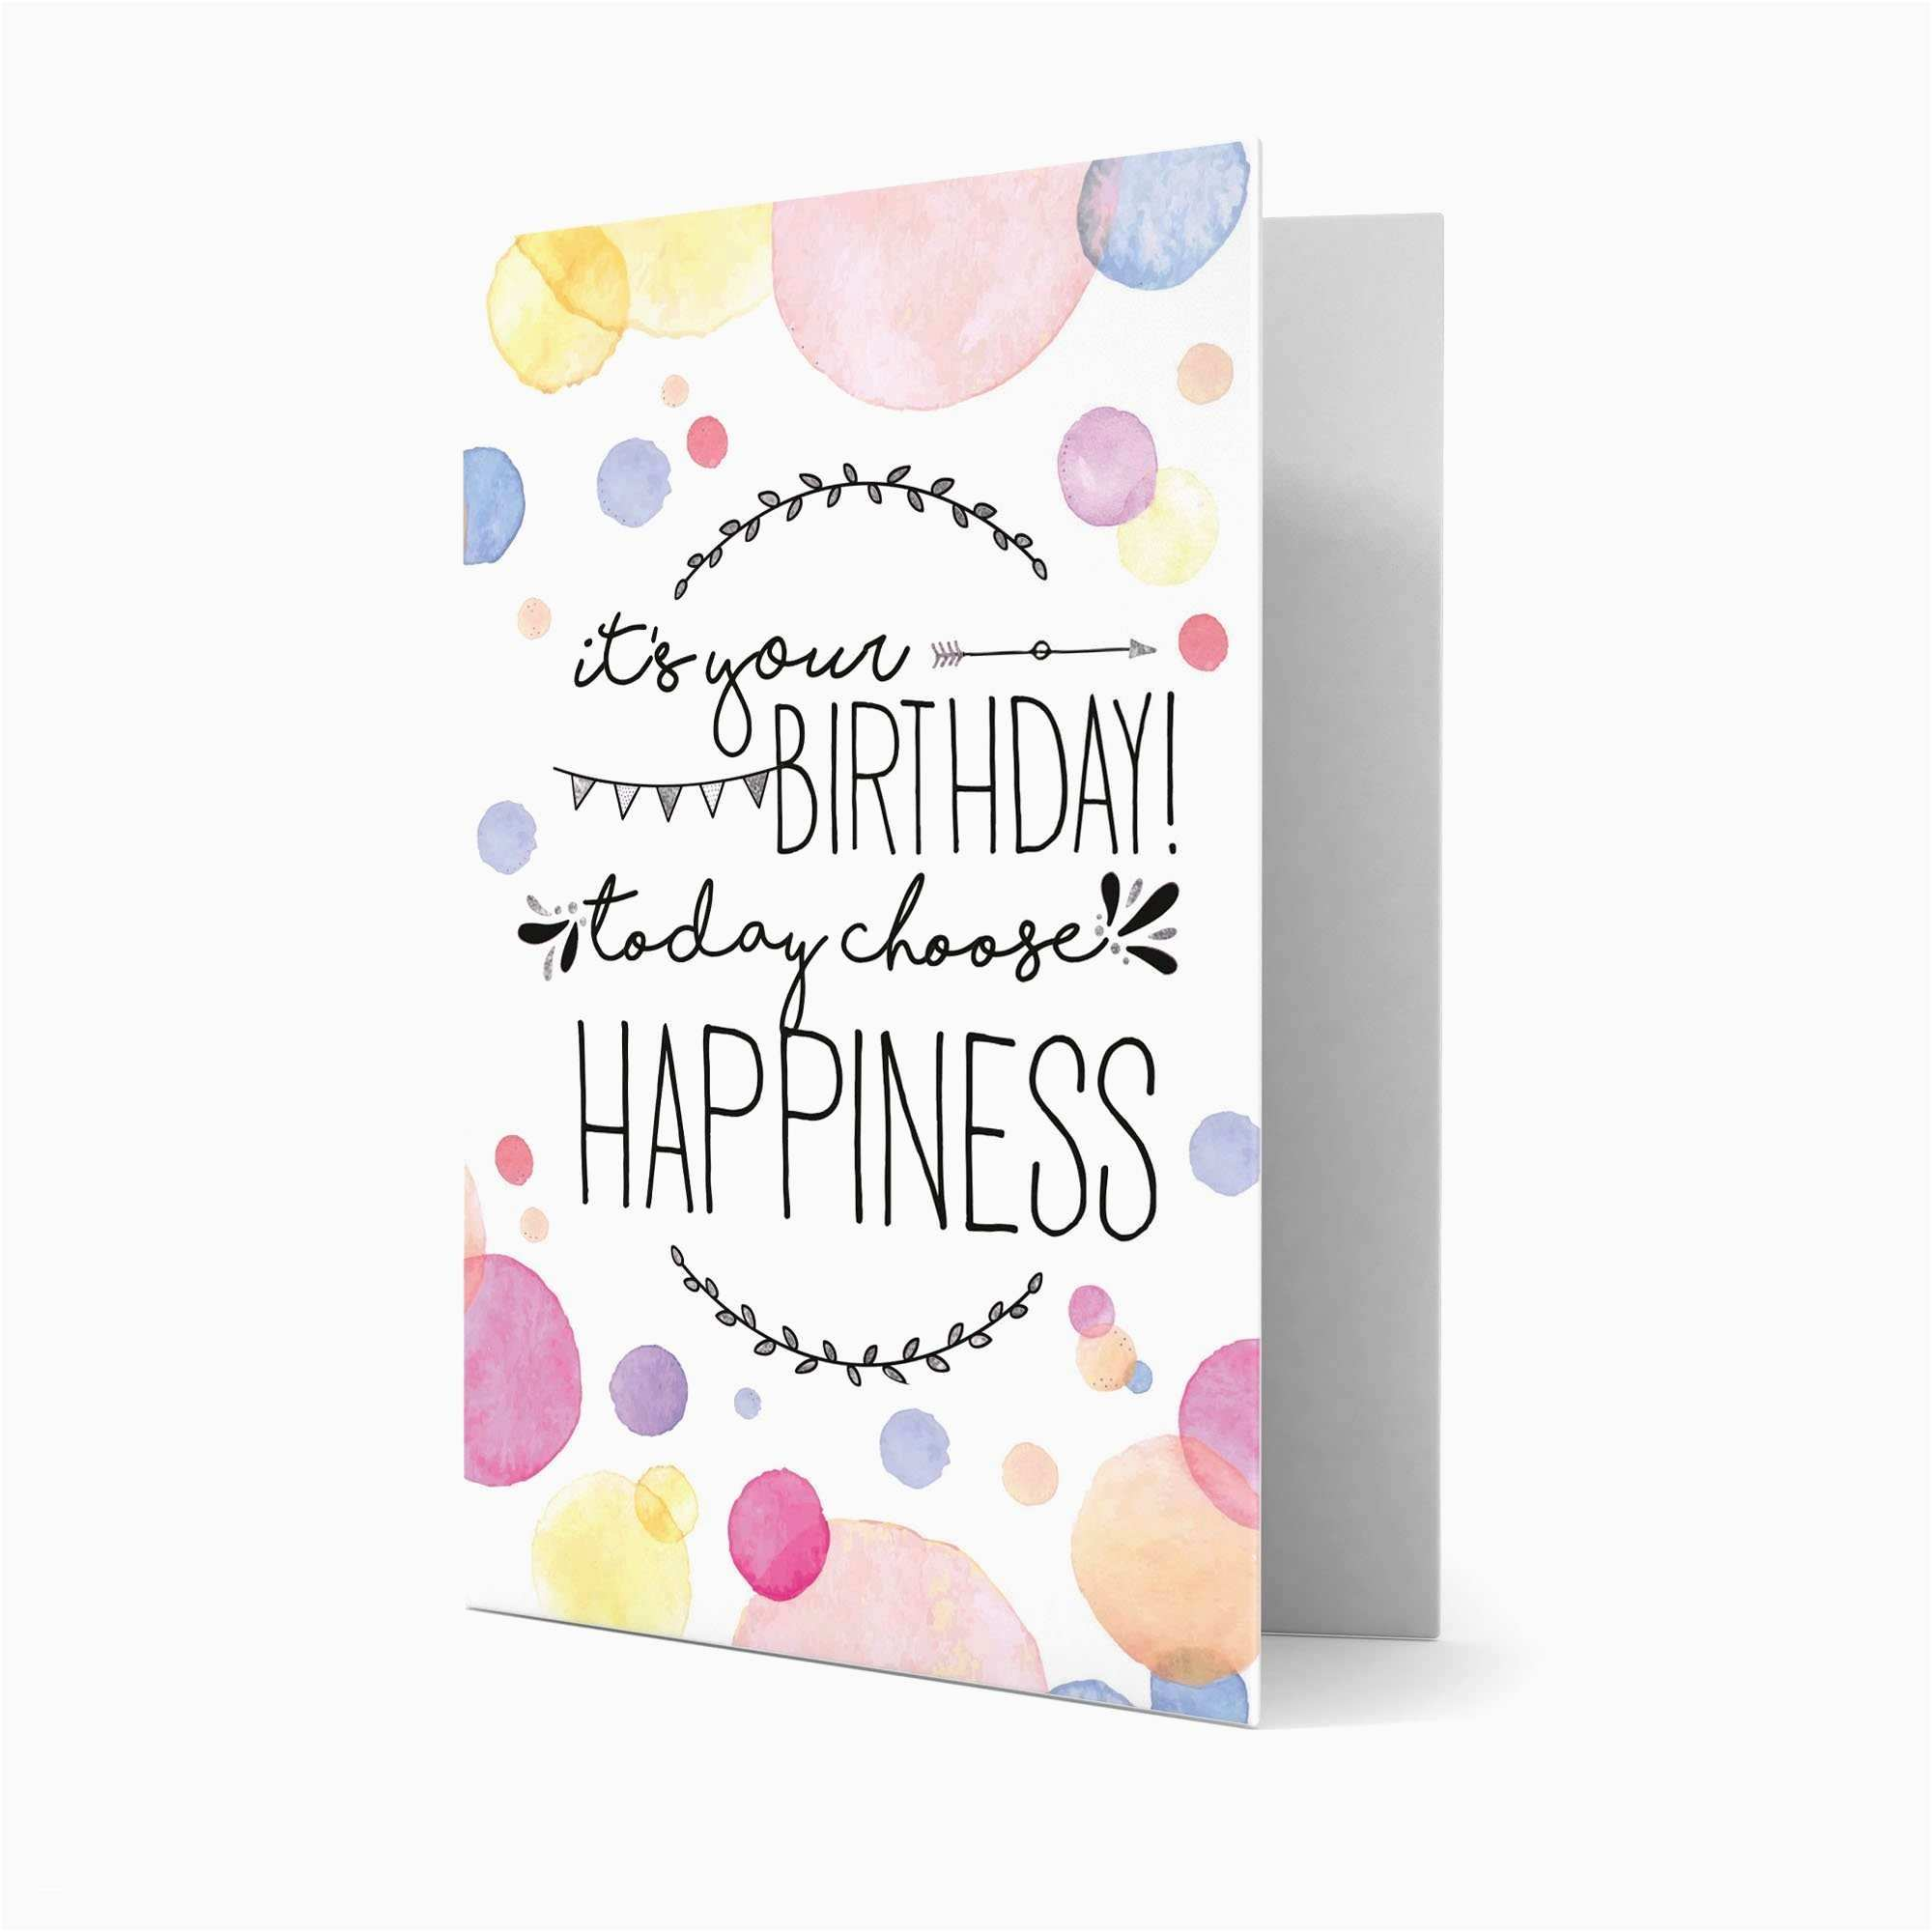 birthday card email templates free ; free-birthday-cards-printable-best-of-birthday-card-email-template-best-birthday-invite-template-of-free-birthday-cards-printable